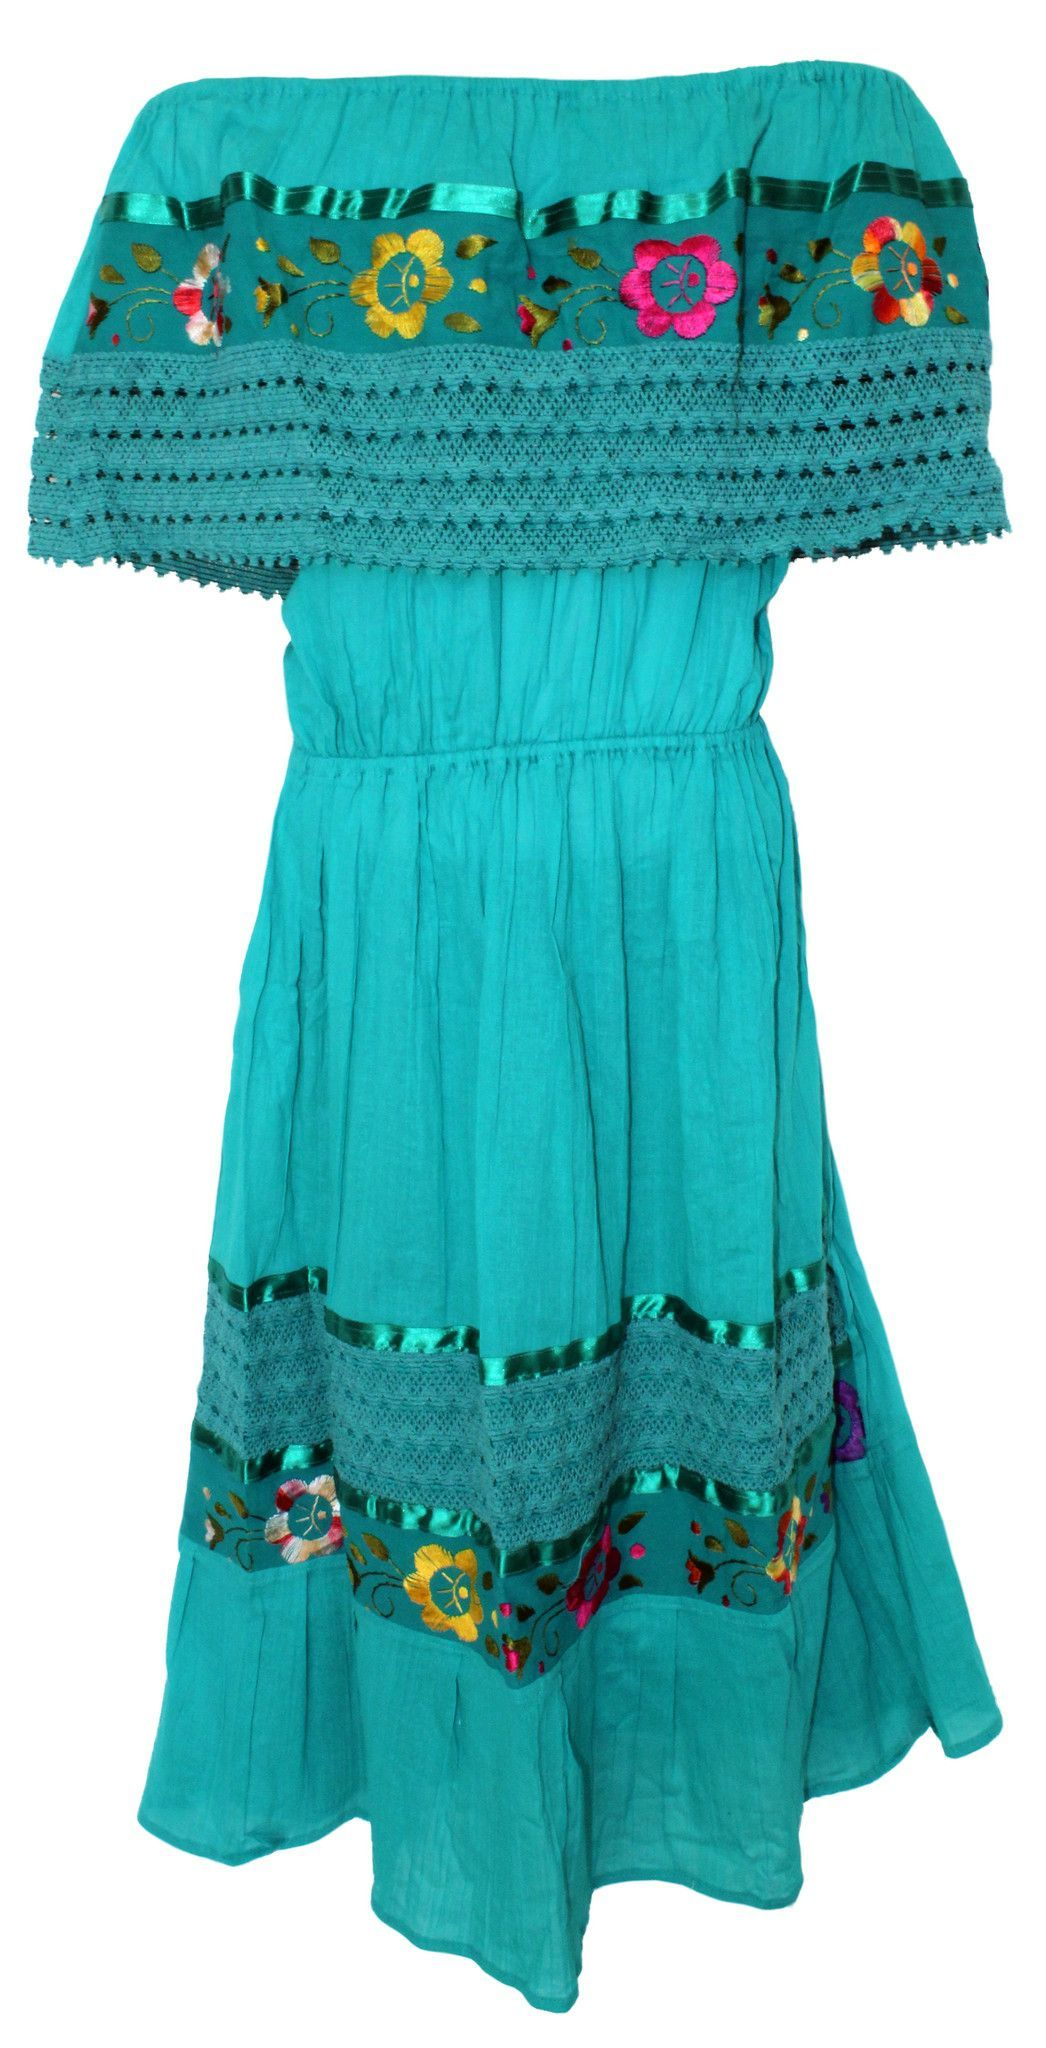 c12c7447e7076 This beautiful Mexican dress features an elastic tube top and elastic waist  which makes this a one-size-fits-Medium through XL This one piece  off-shoulder ...